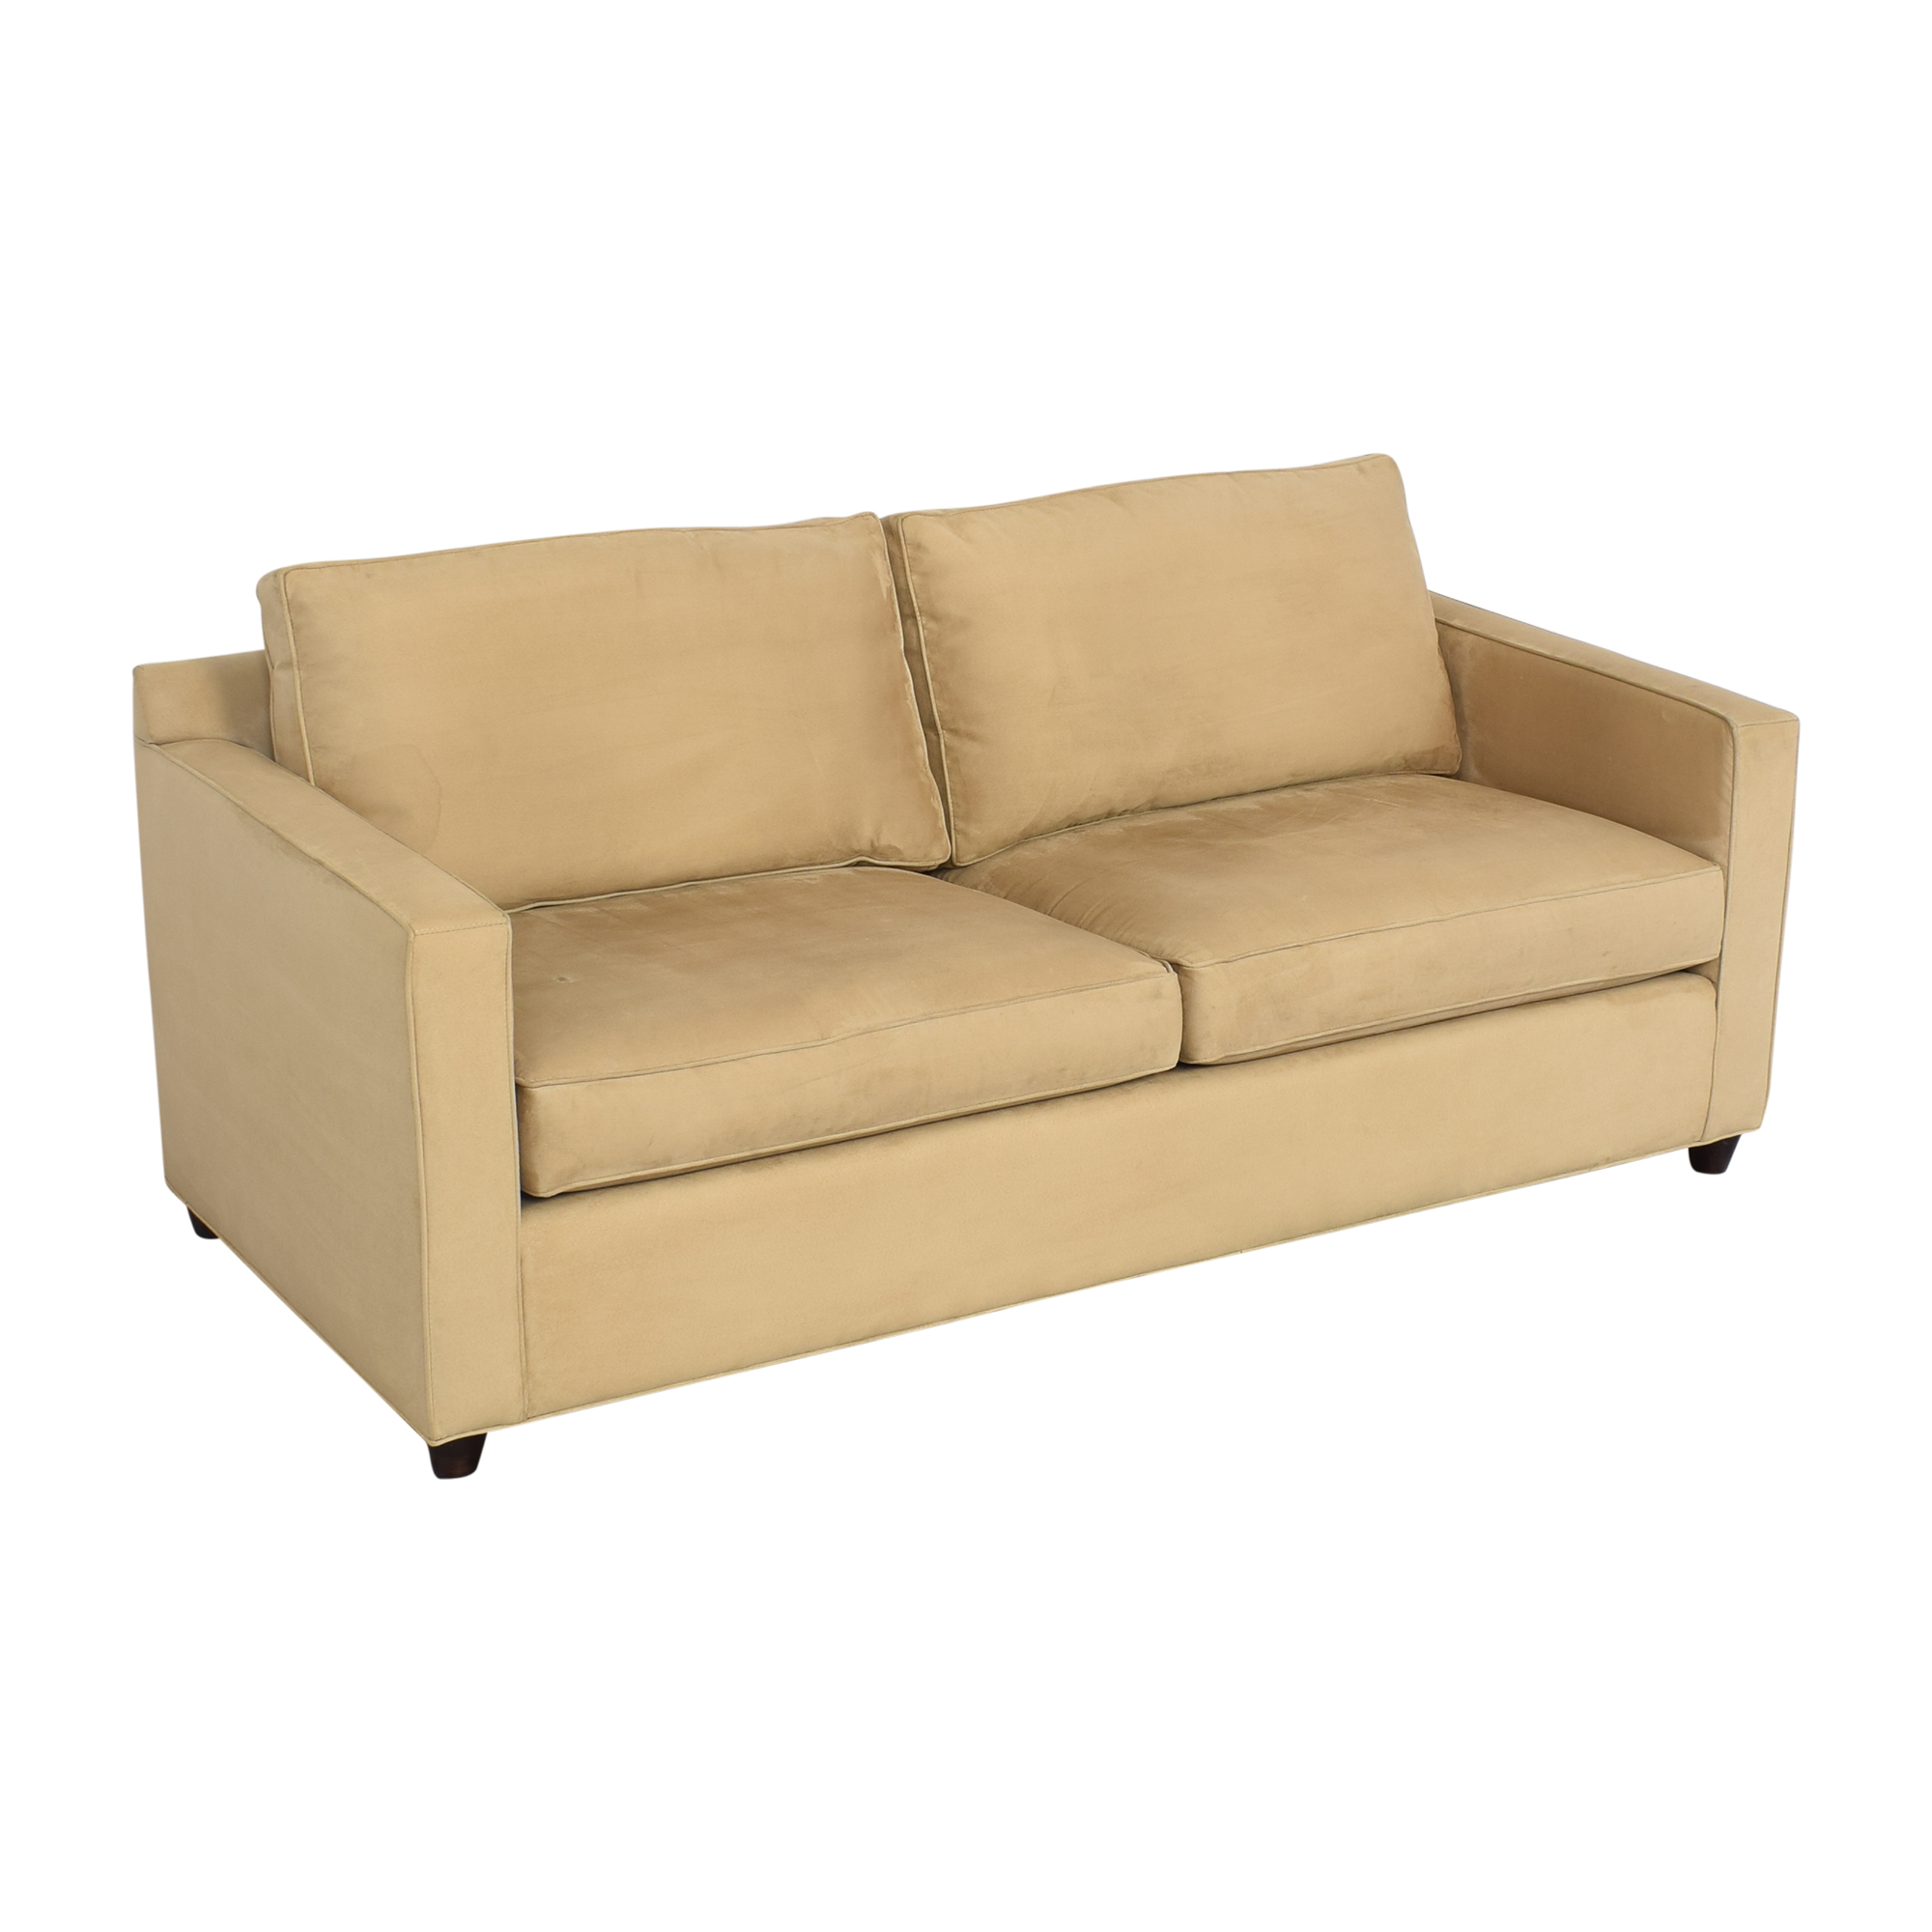 Crate & Barrel Crate & Barrel Two Cushion Sofa on sale